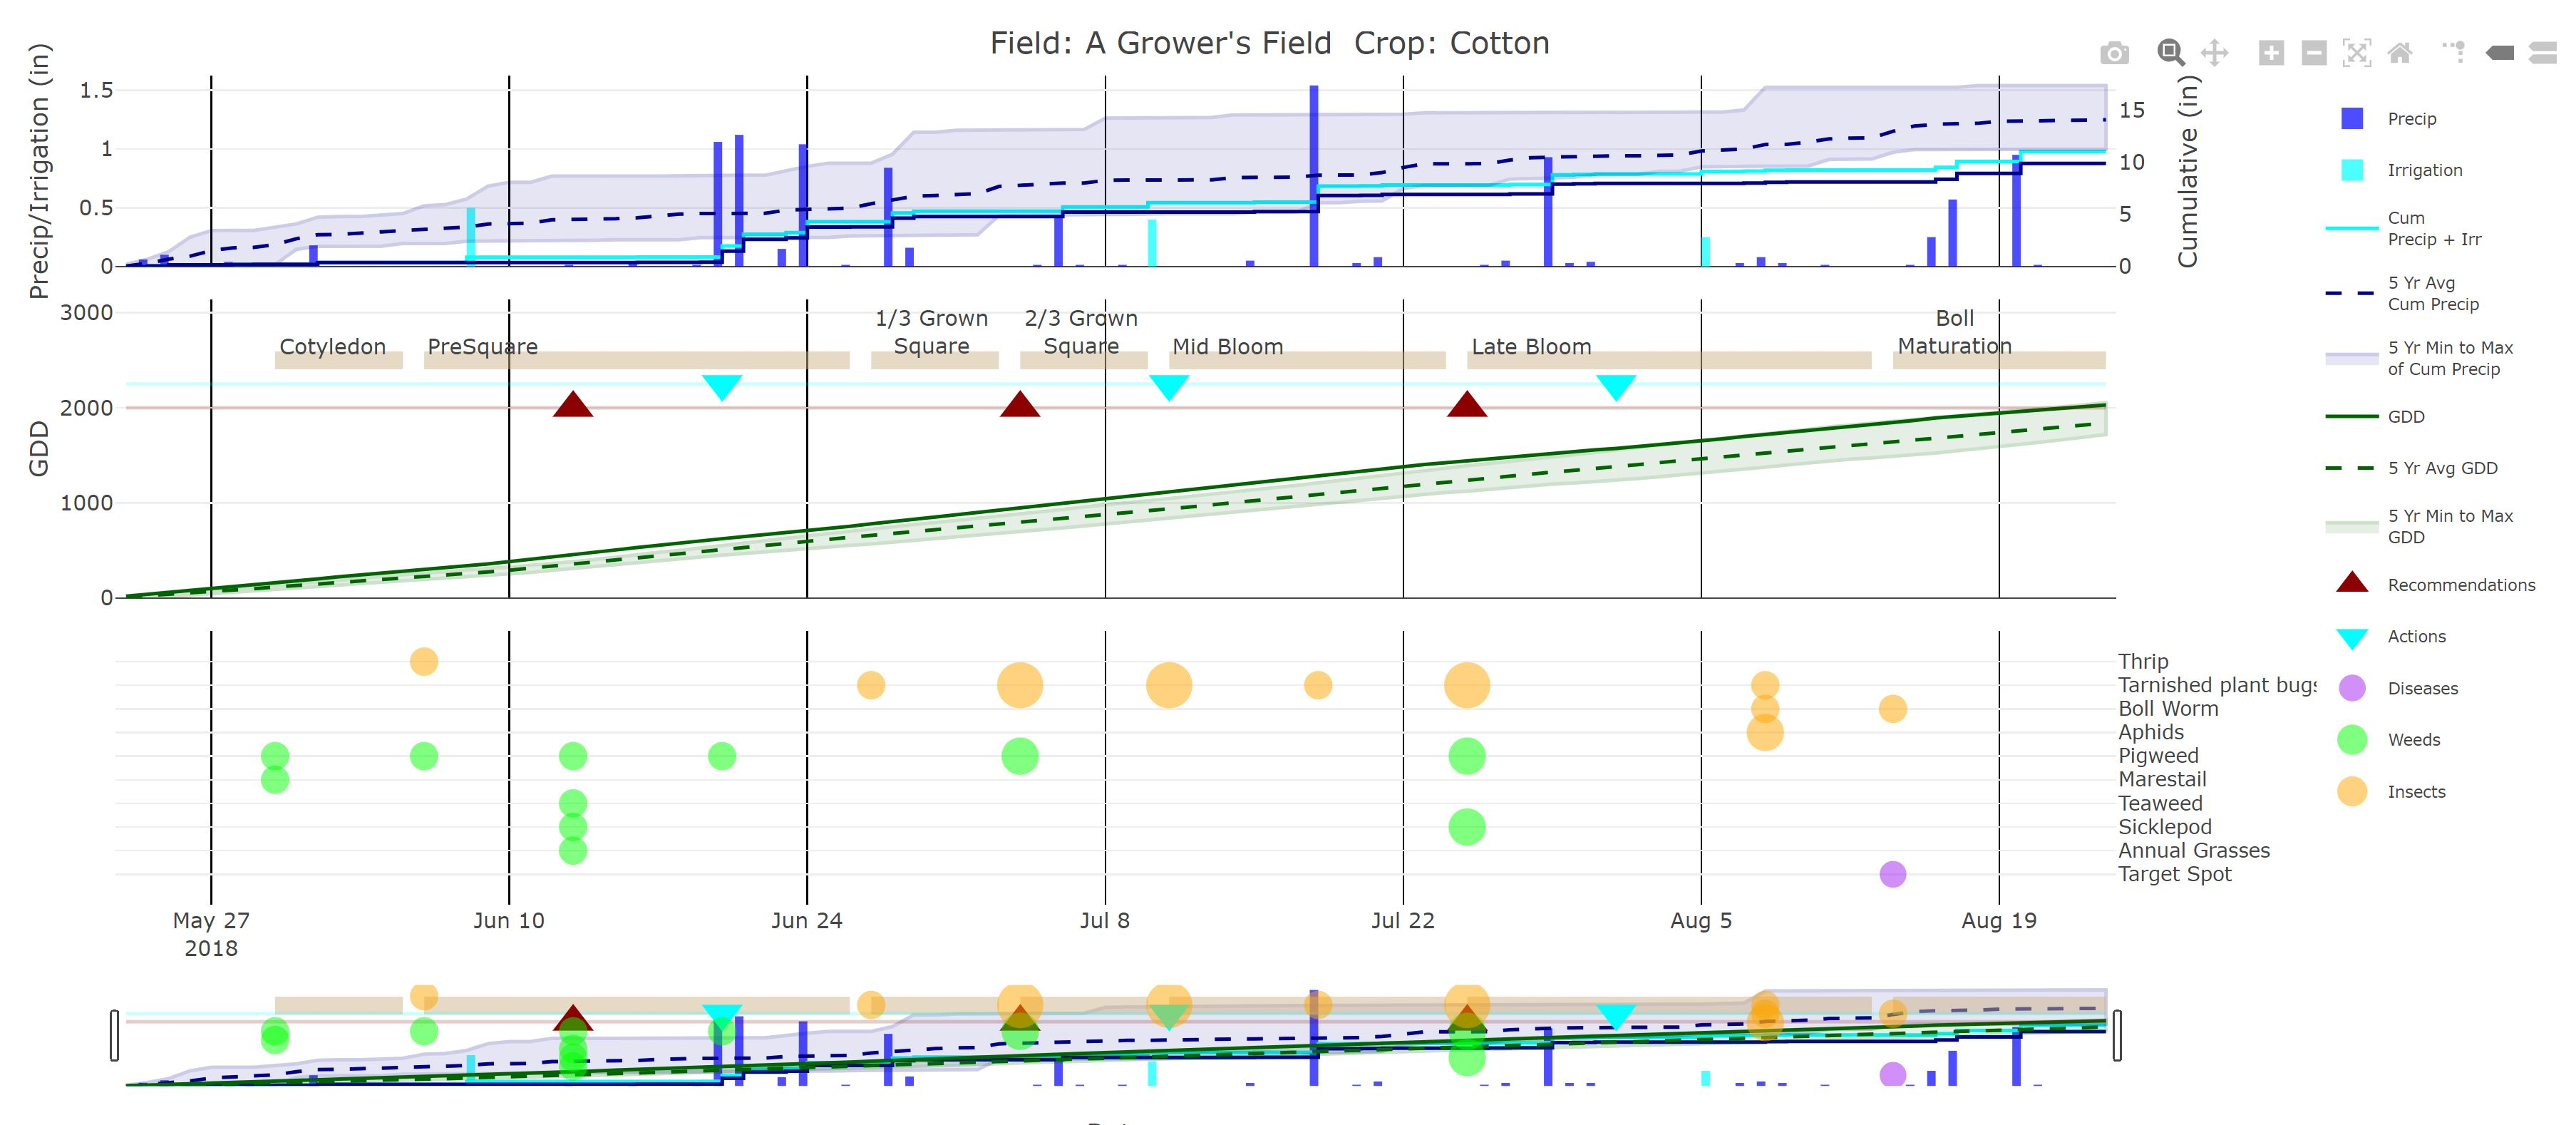 Crop timeline from FieldX data